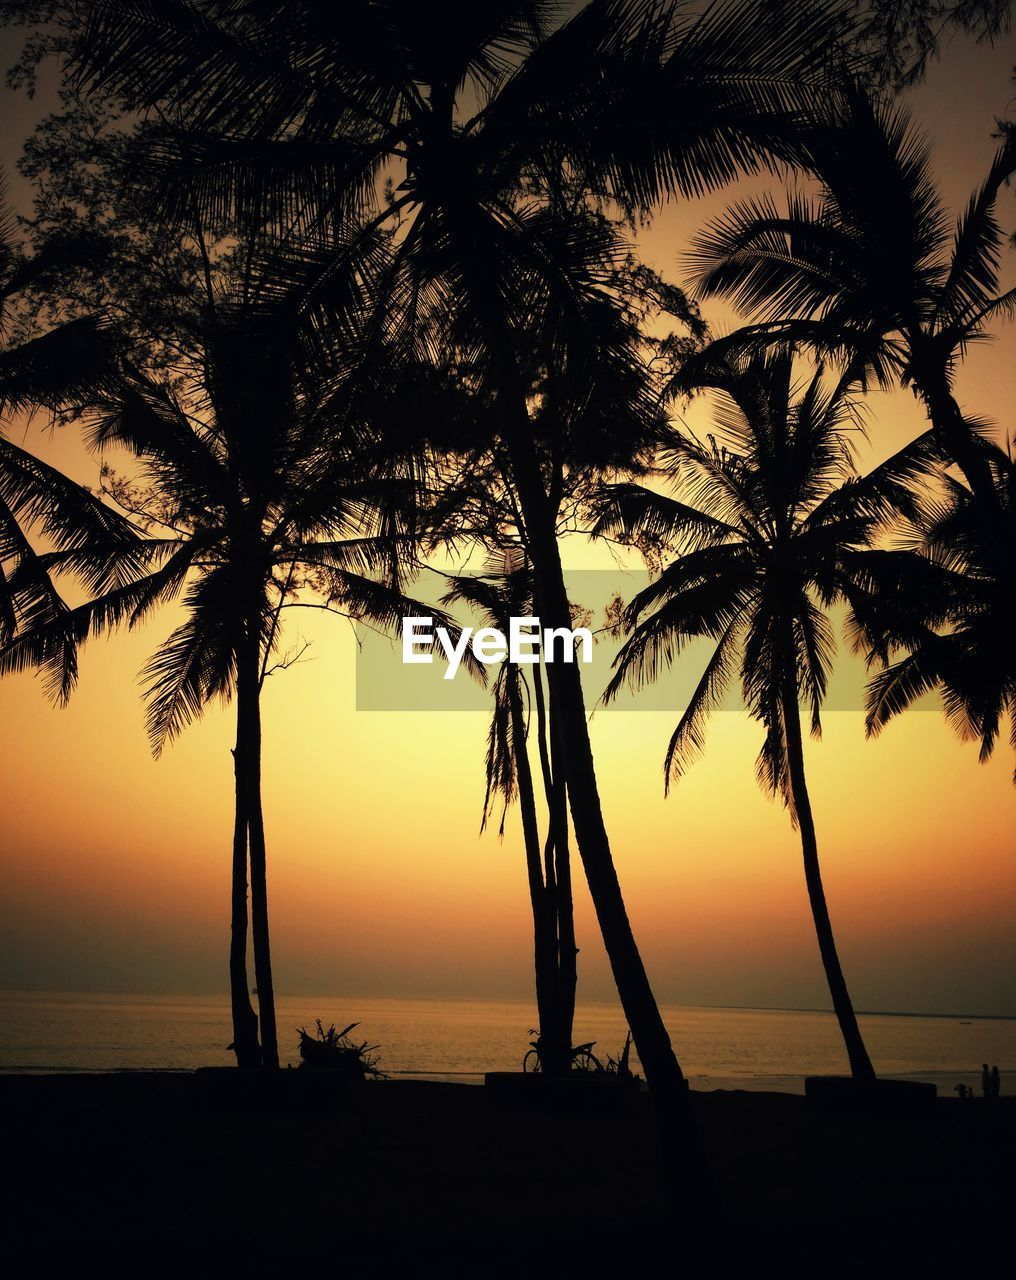 tree, palm tree, sunset, beauty in nature, sea, scenics, nature, tranquility, silhouette, tranquil scene, tree trunk, idyllic, no people, beach, water, sun, horizon over water, sky, growth, outdoors